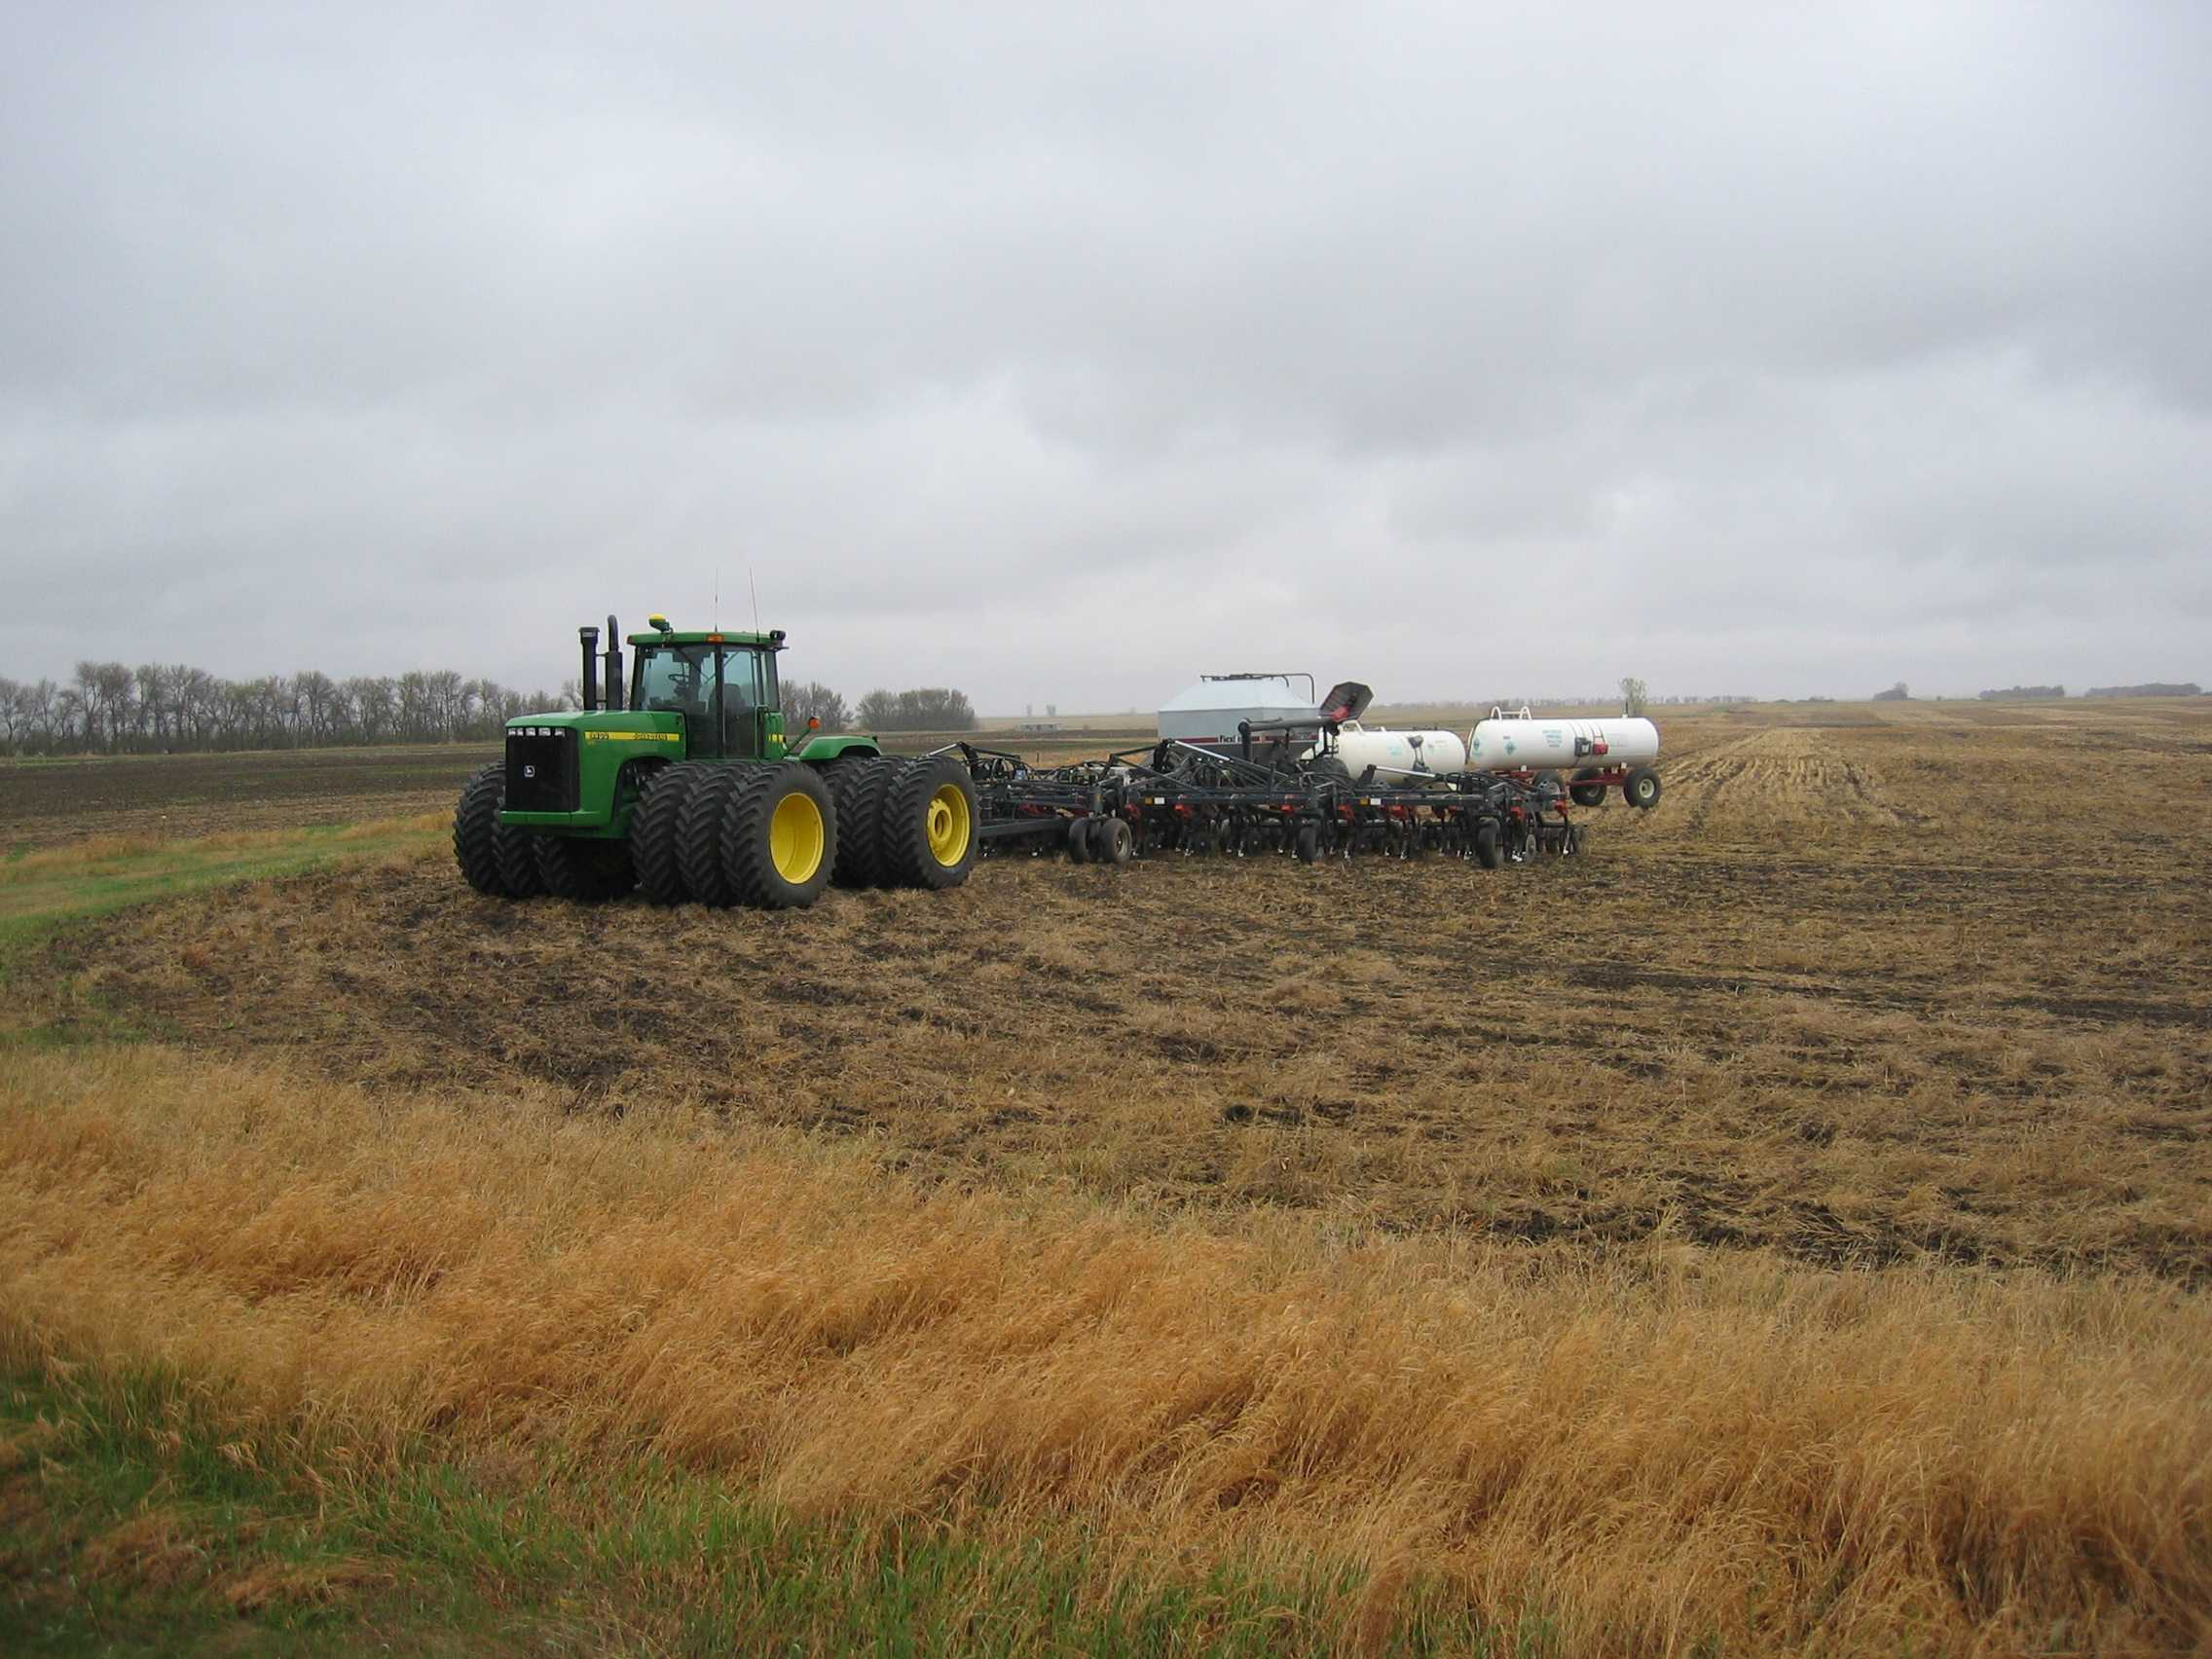 The tractor on the Dible farm, similar to this one, represents a capital investment of almost one million dollars.